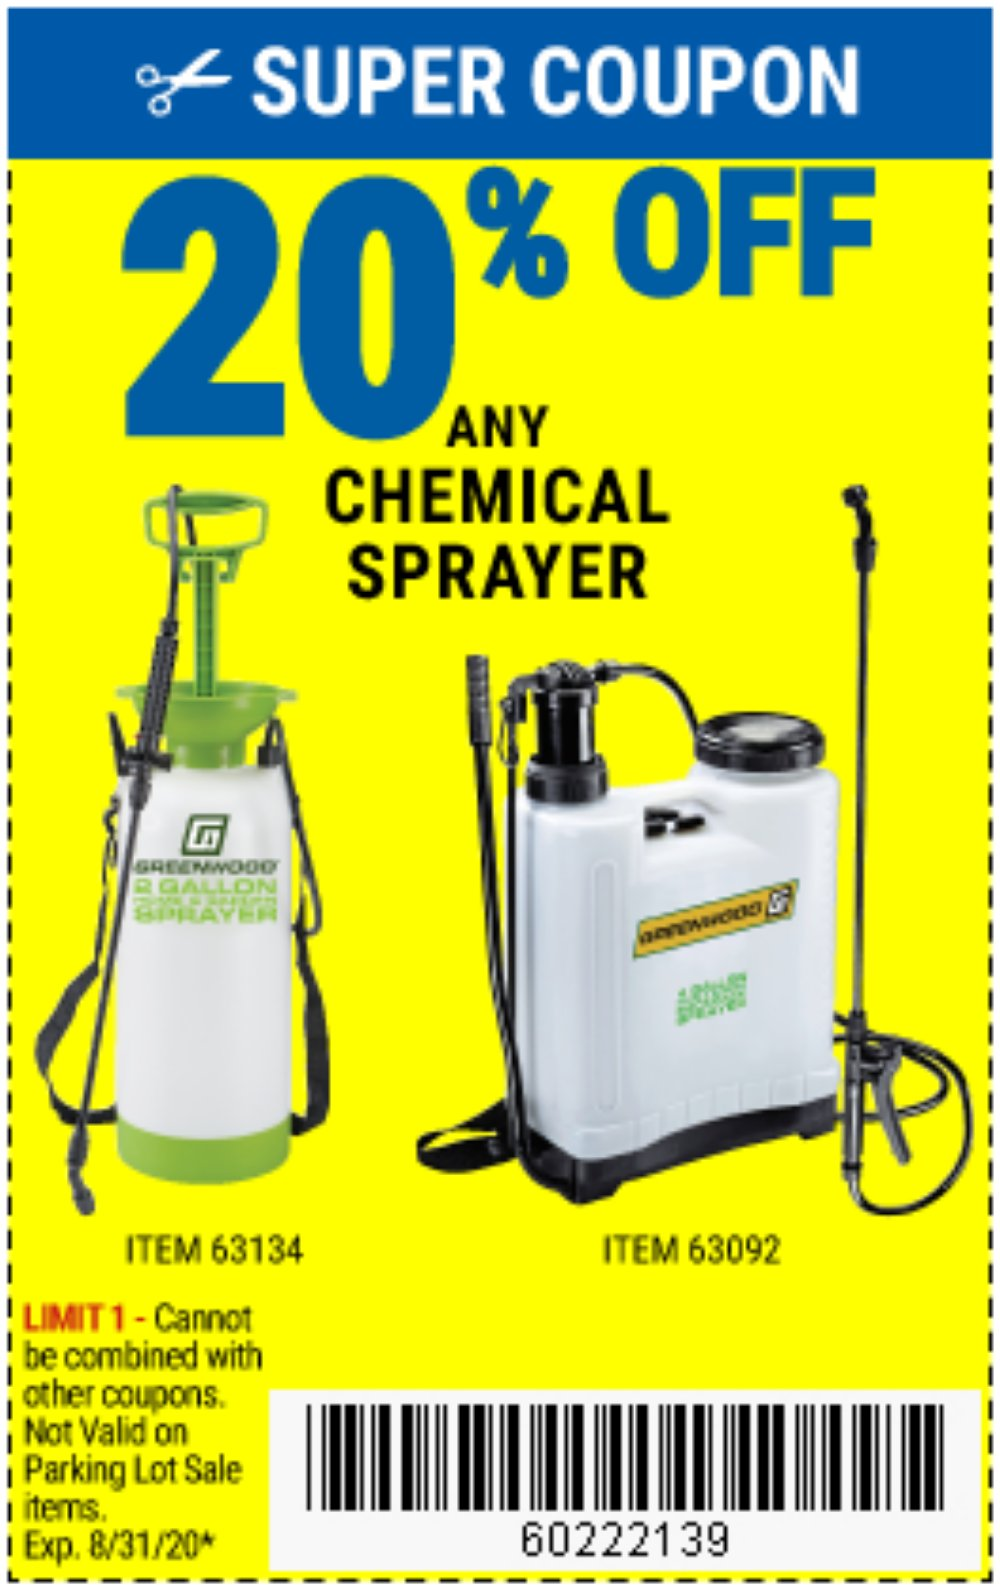 Harbor Freight Coupon, HF Coupons - 4 Gallon Backpack Sprayer